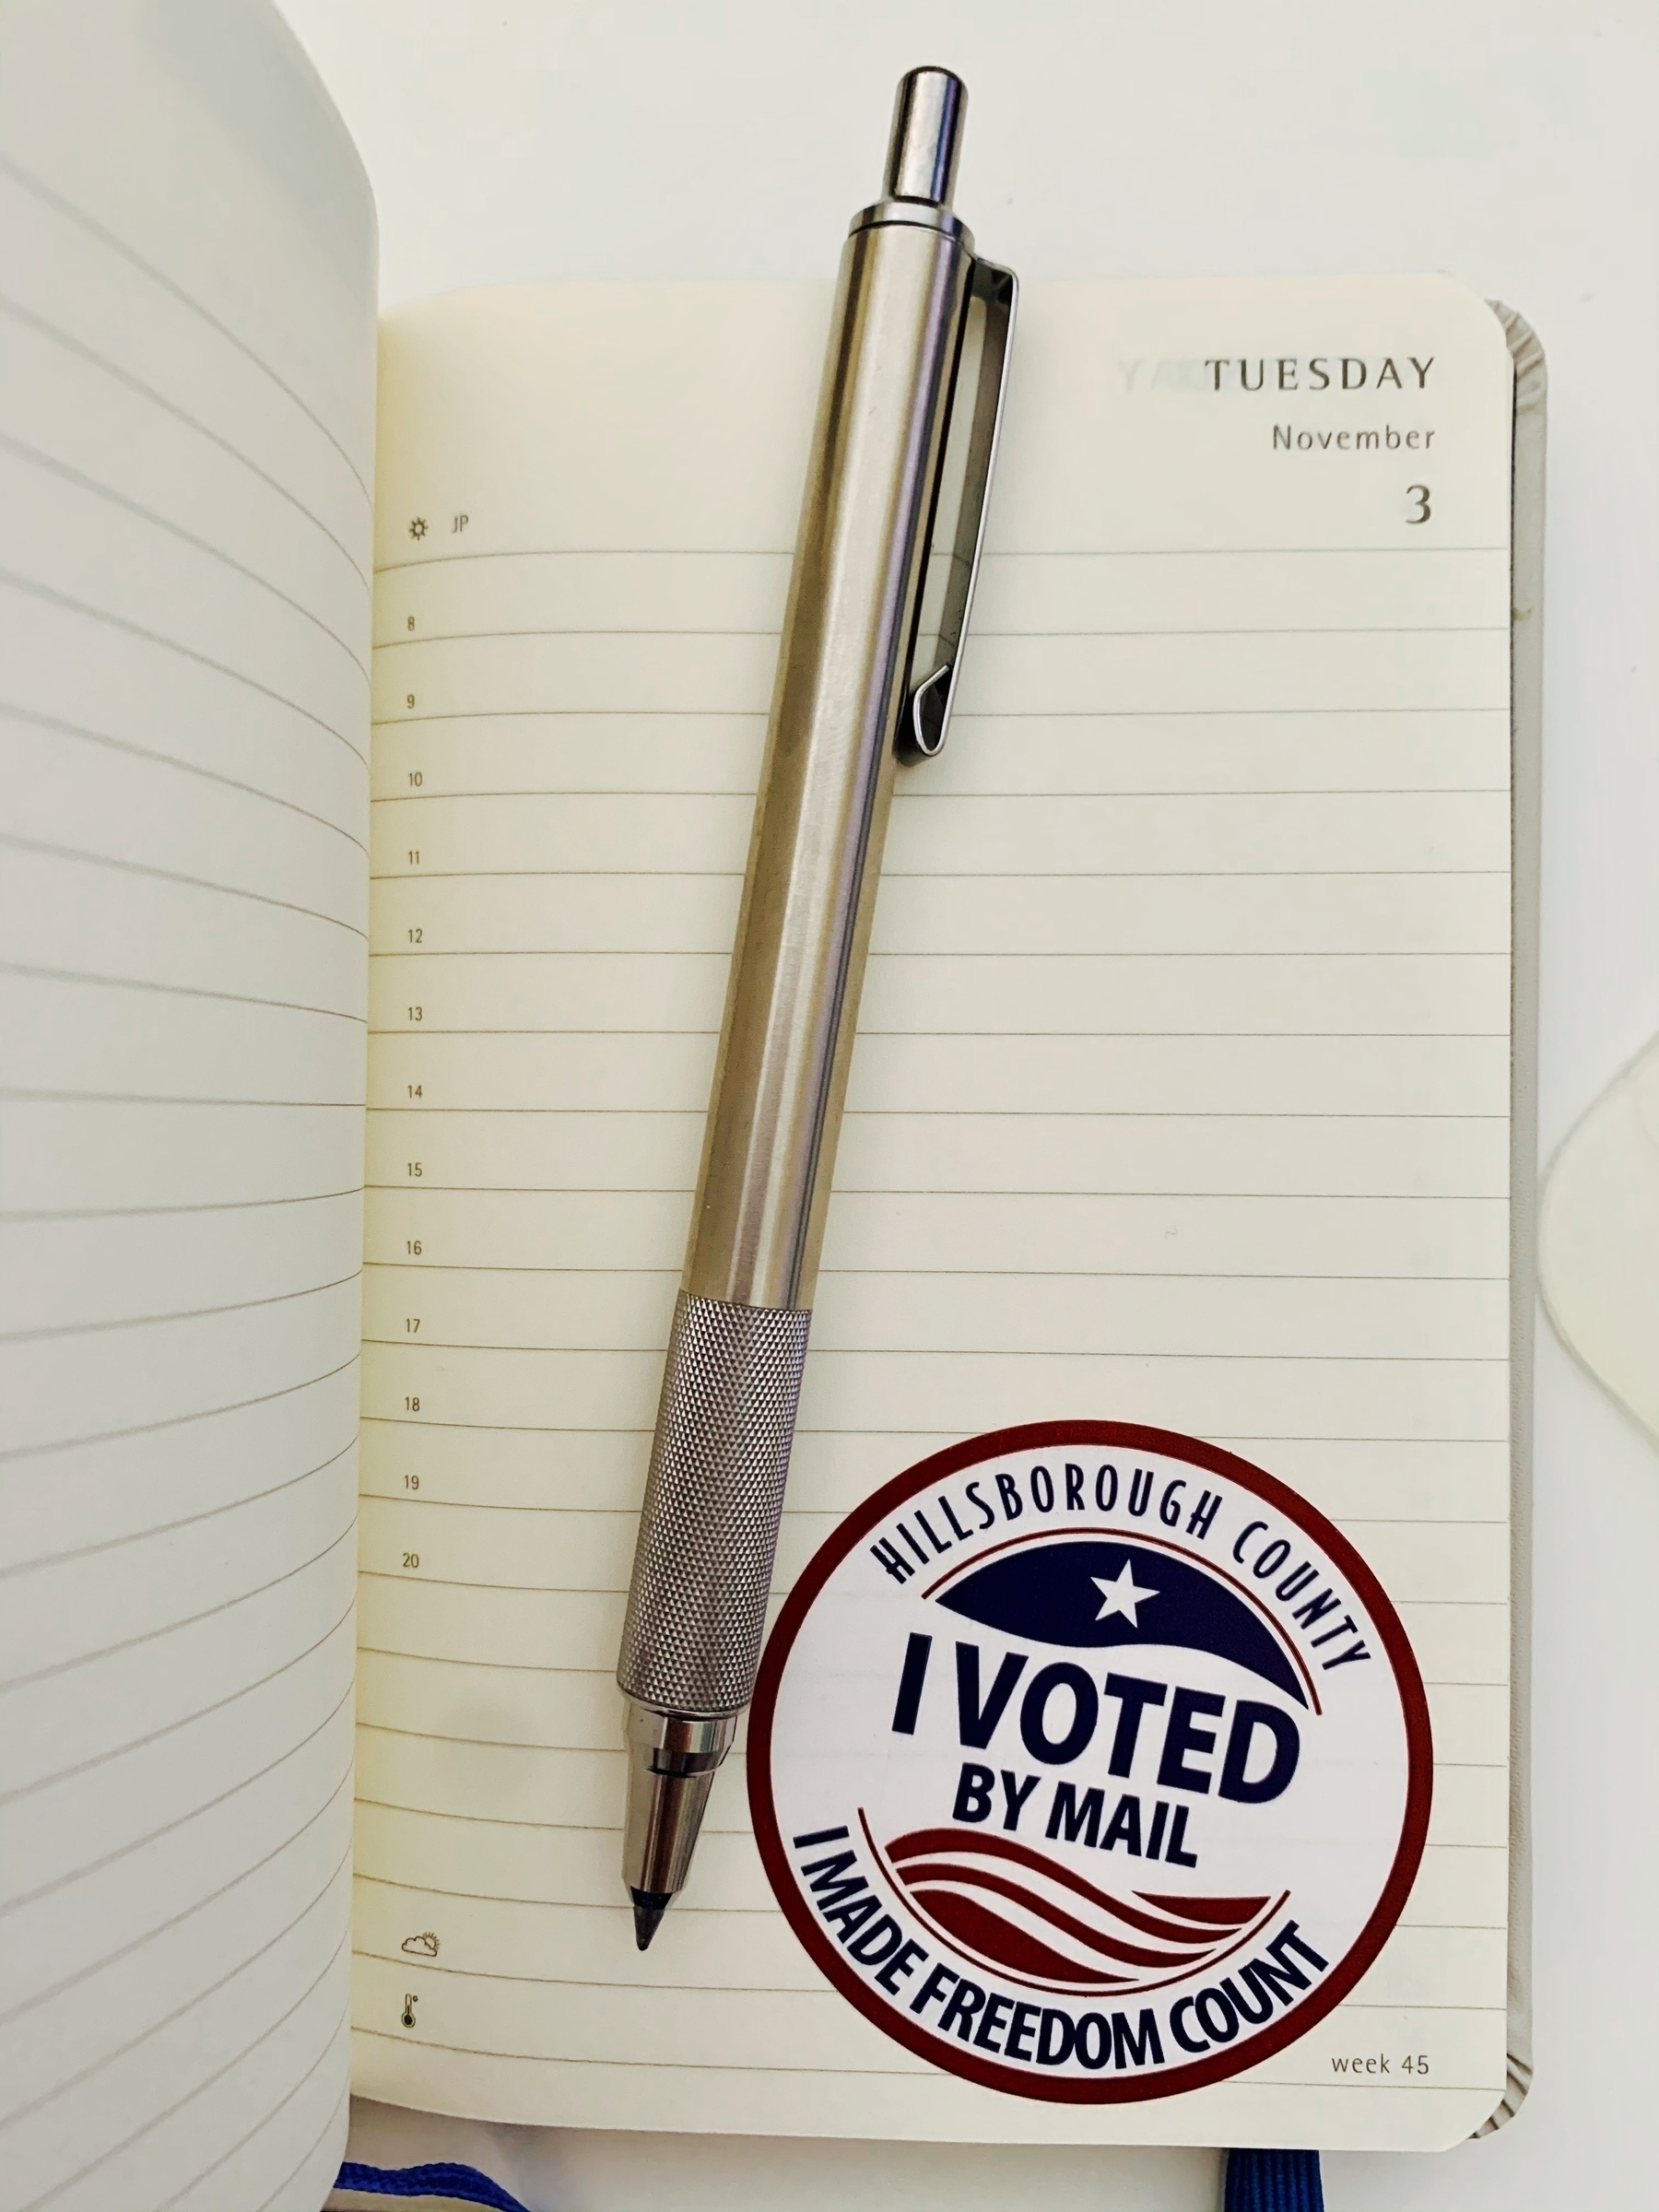 I voted sticker on November 3 journal page